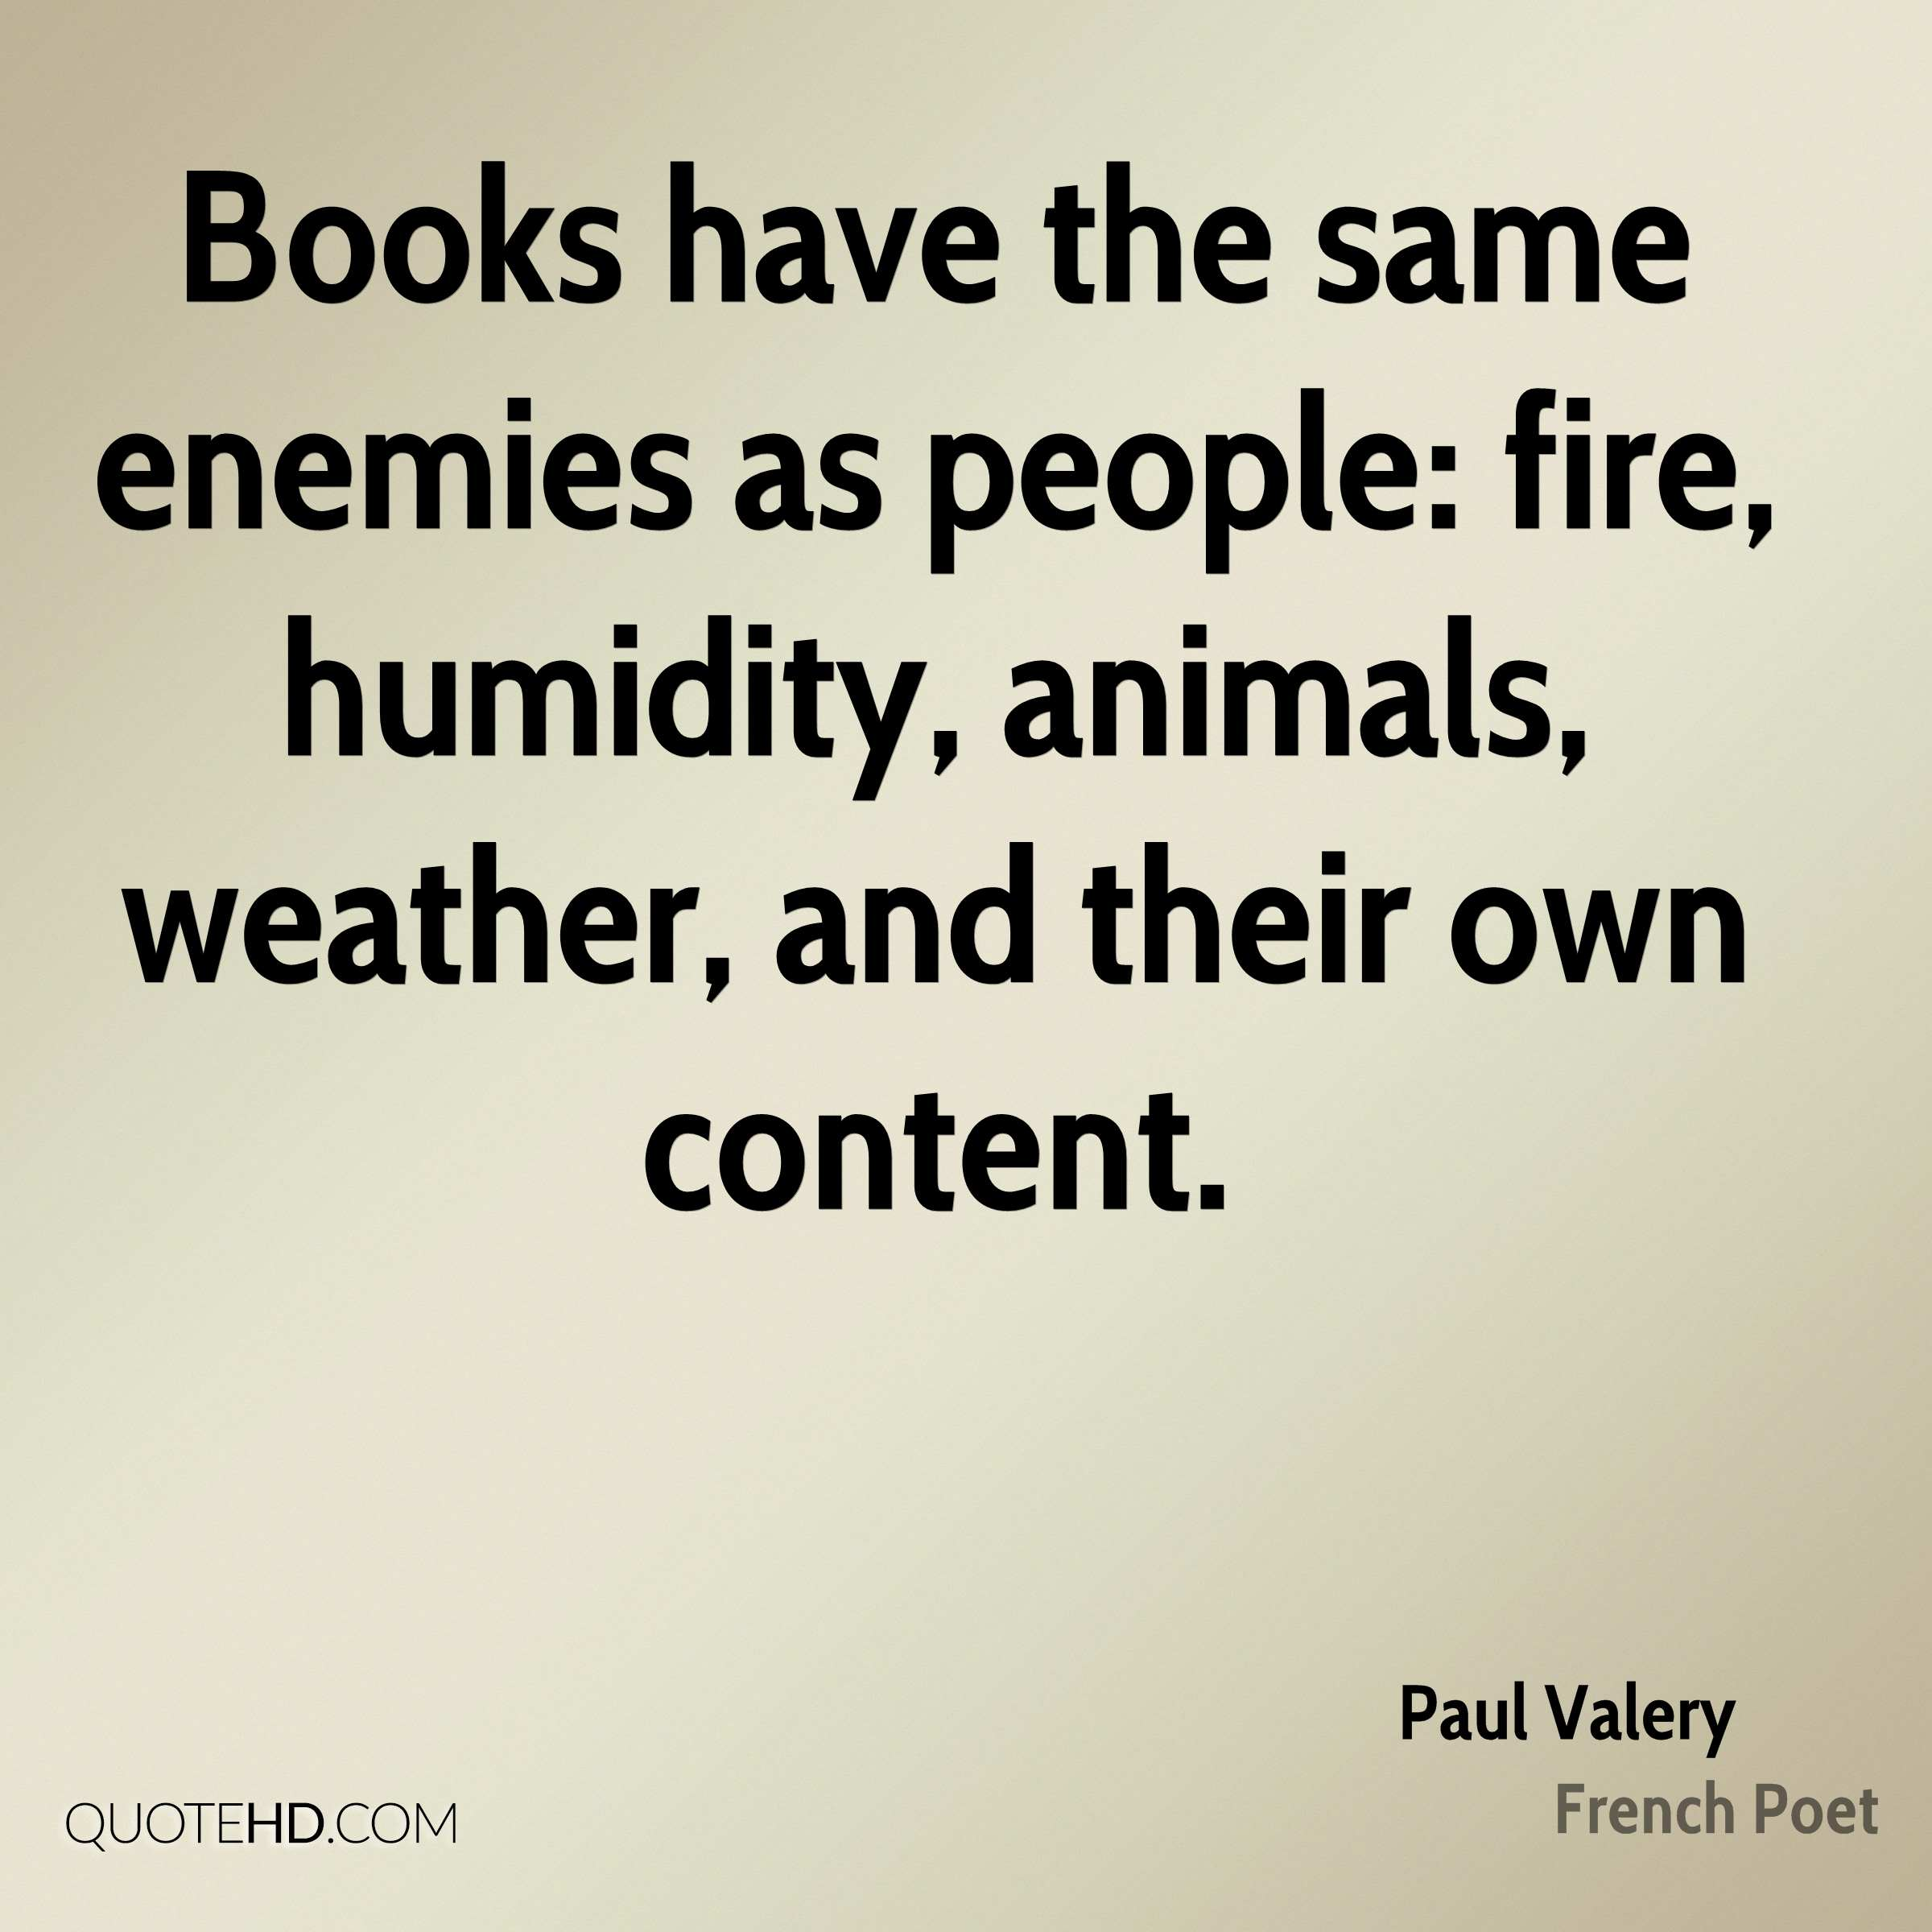 Books have the same enemies as people: fire, humidity, animals, weather, and their own content.